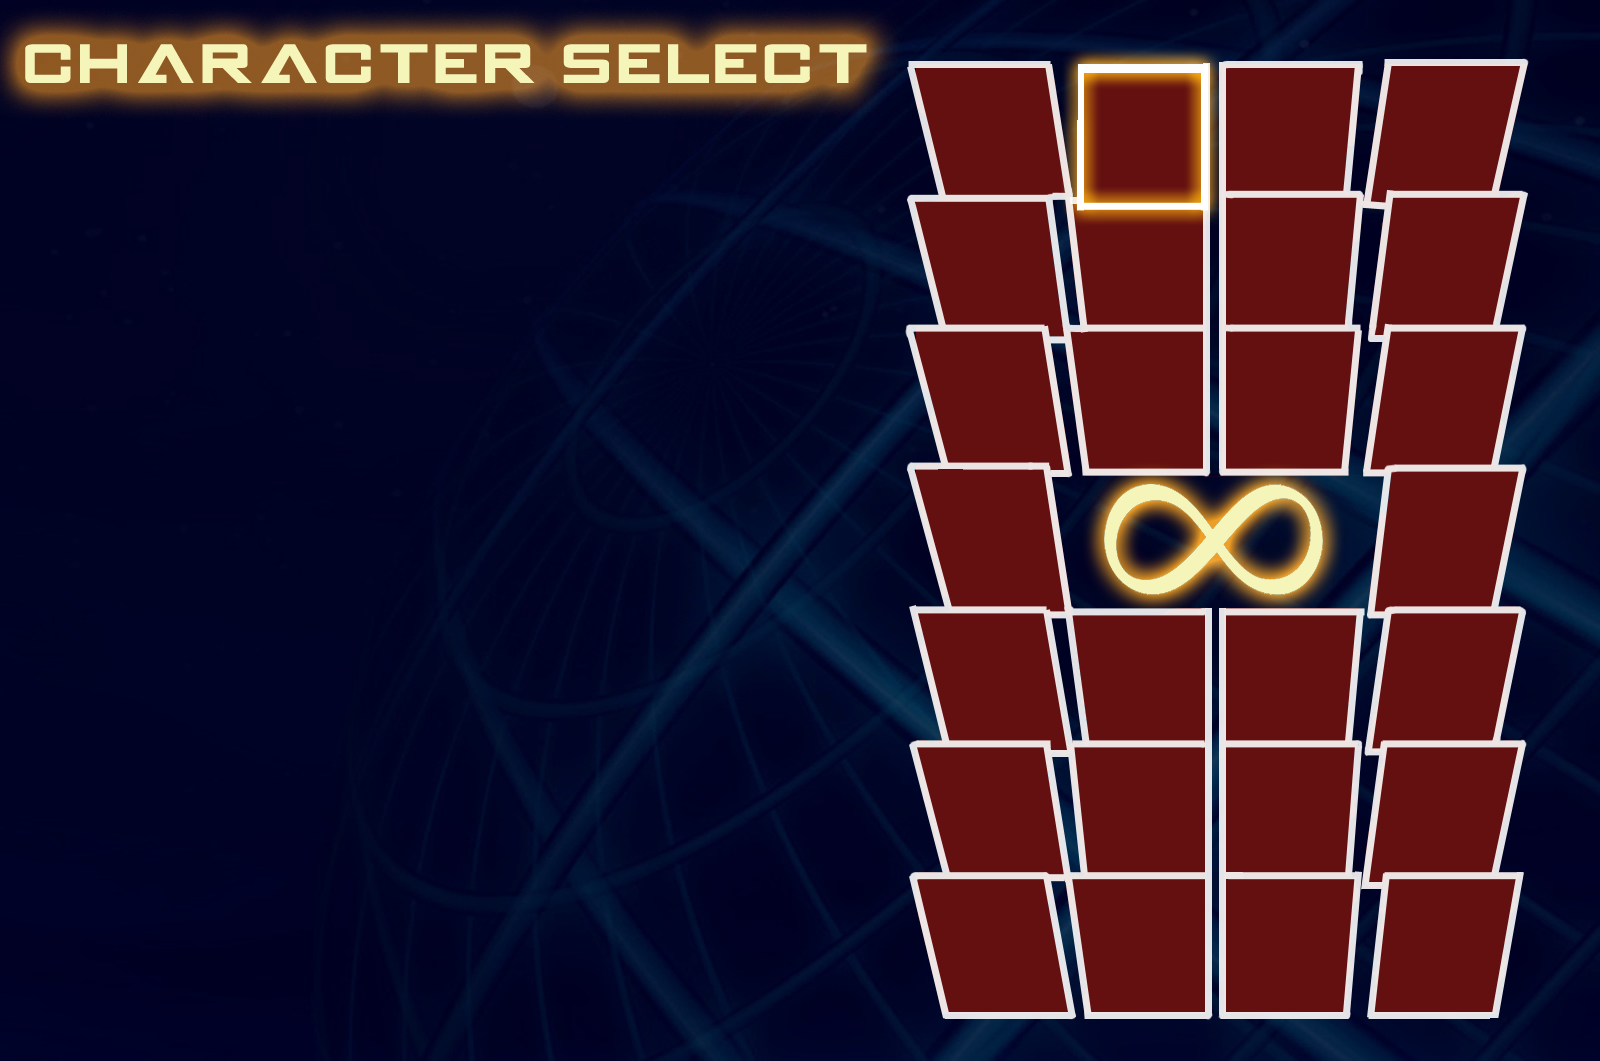 Character Select Template By Nefepants On Deviantart